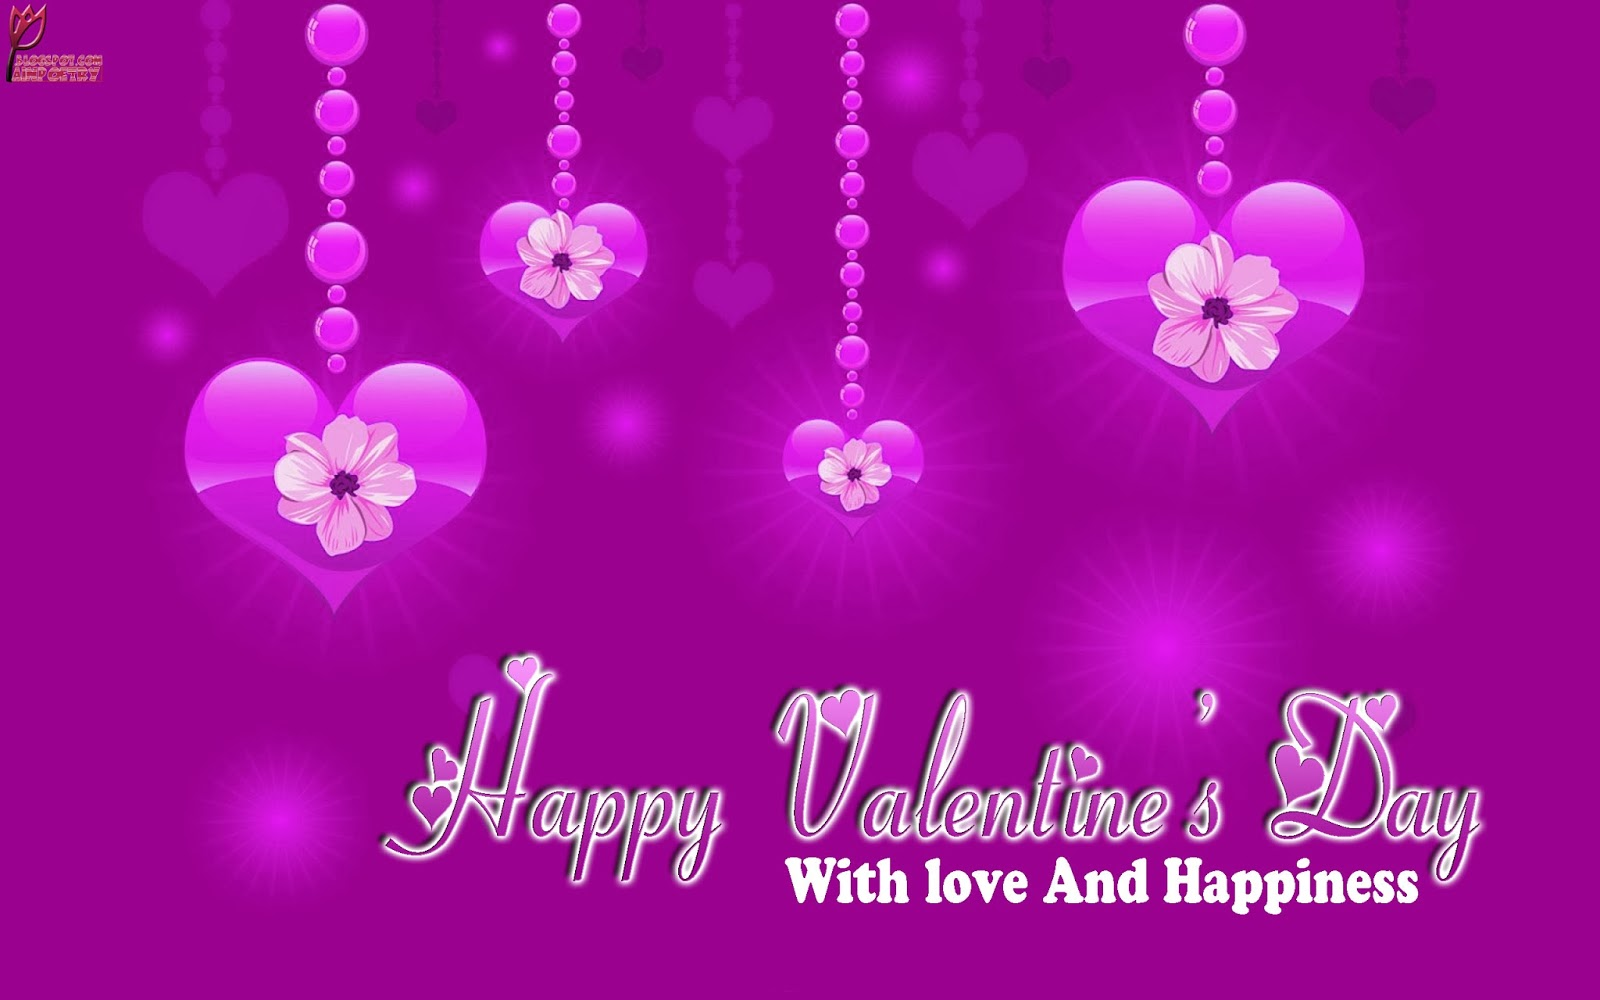 Happy-Valentines-Day-Wishes-Wallpaper-With-Hearts-Image-HD-Wide